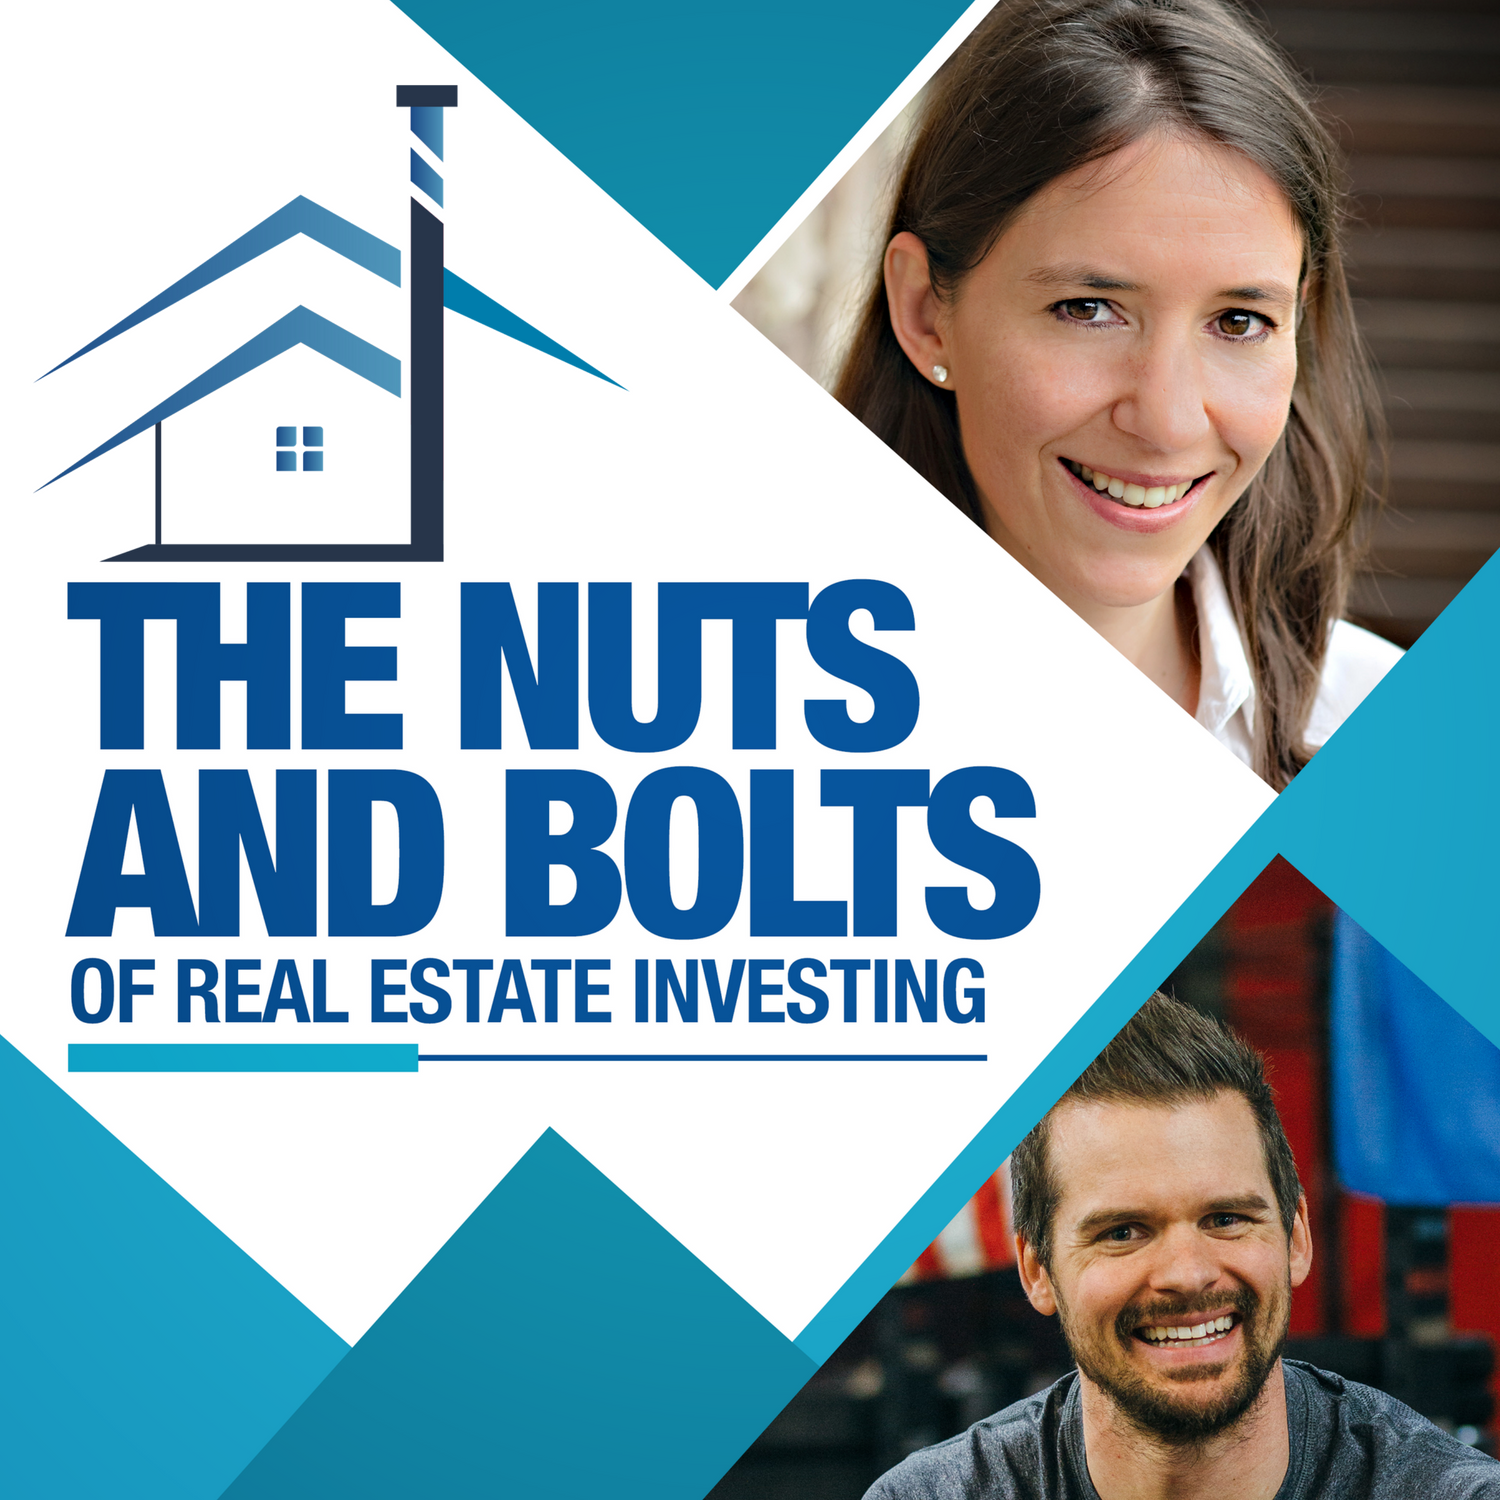 Seattle Investors Club: The nuts and bolts of real estate podcast